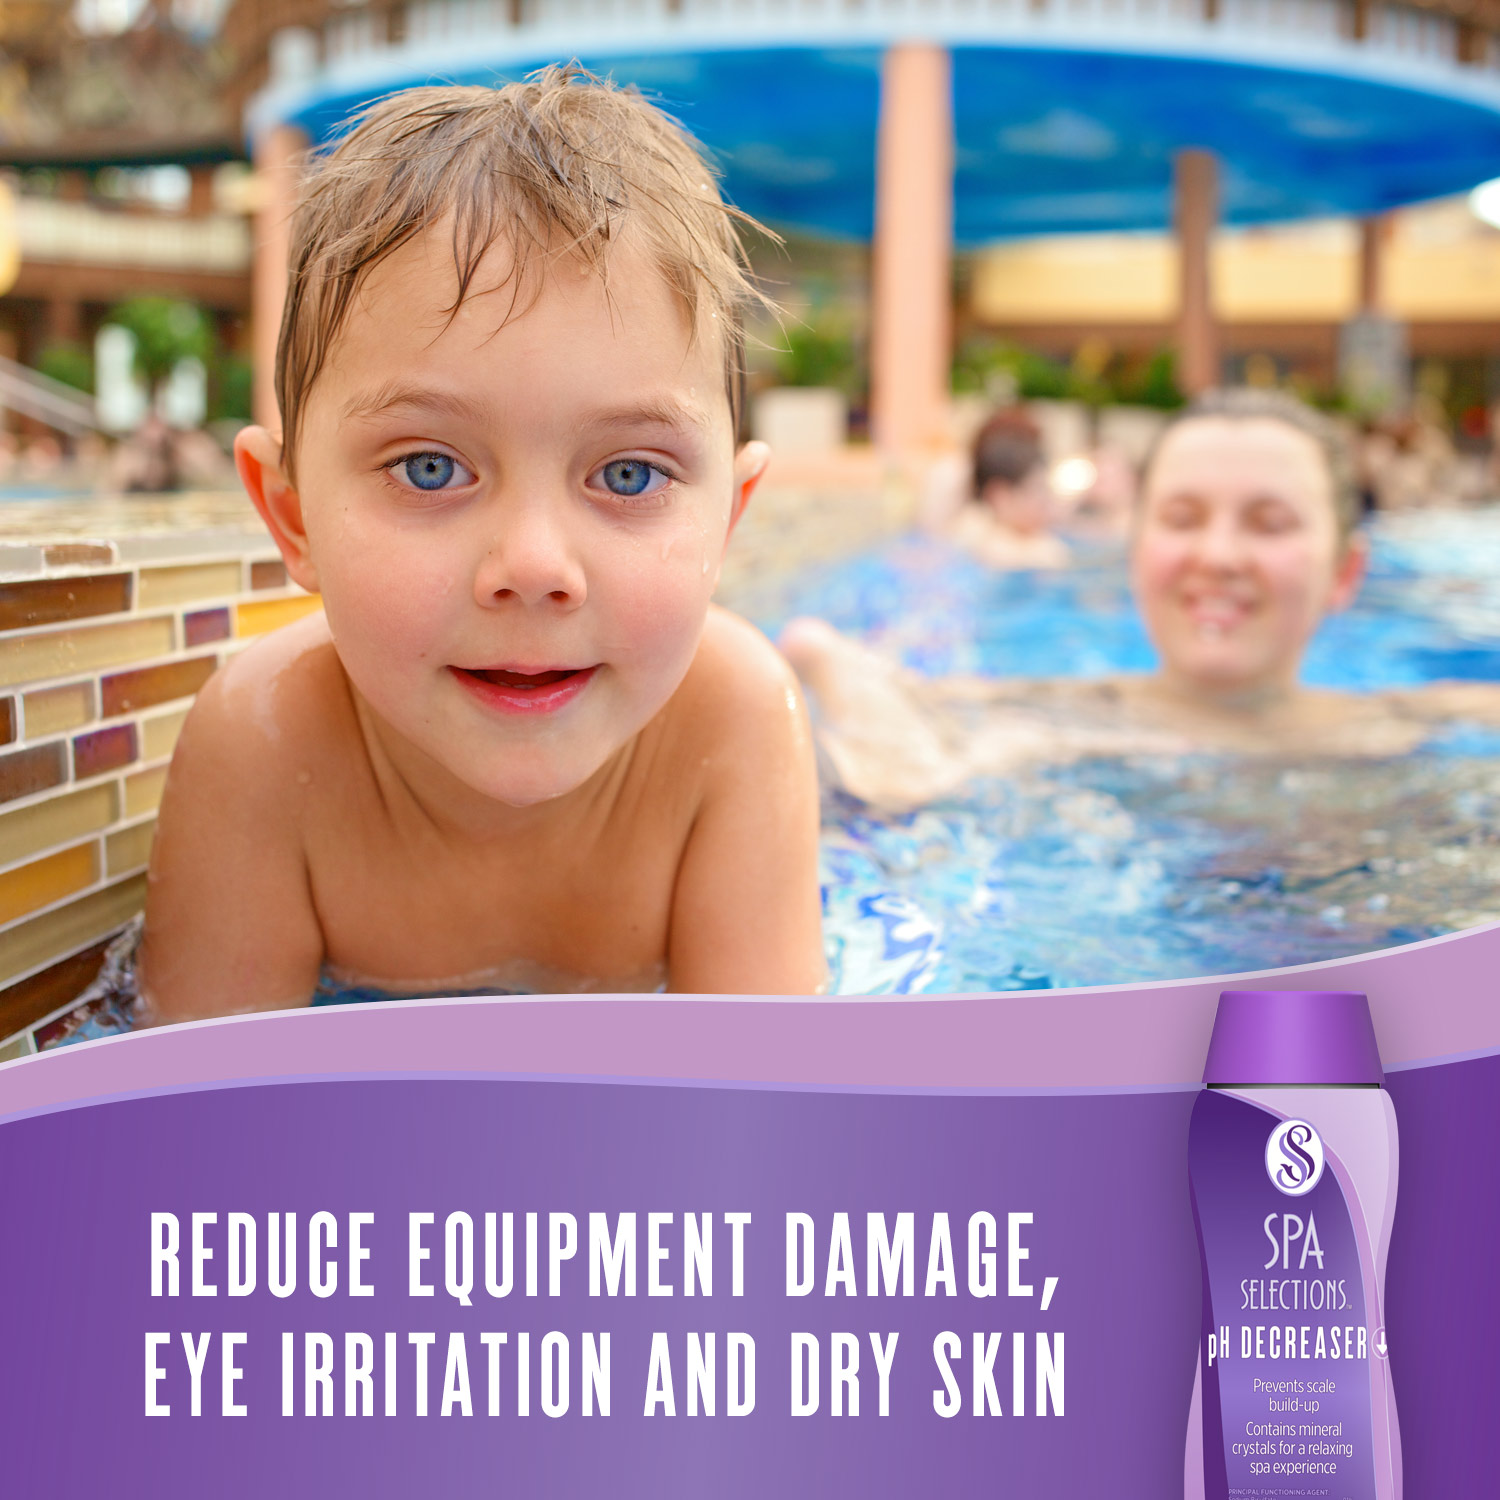 Blue eyed child enjoying an outdoor spa. Reduce equipment damage, eye irritation and dry skin with Spa Selections pH Decreaser.